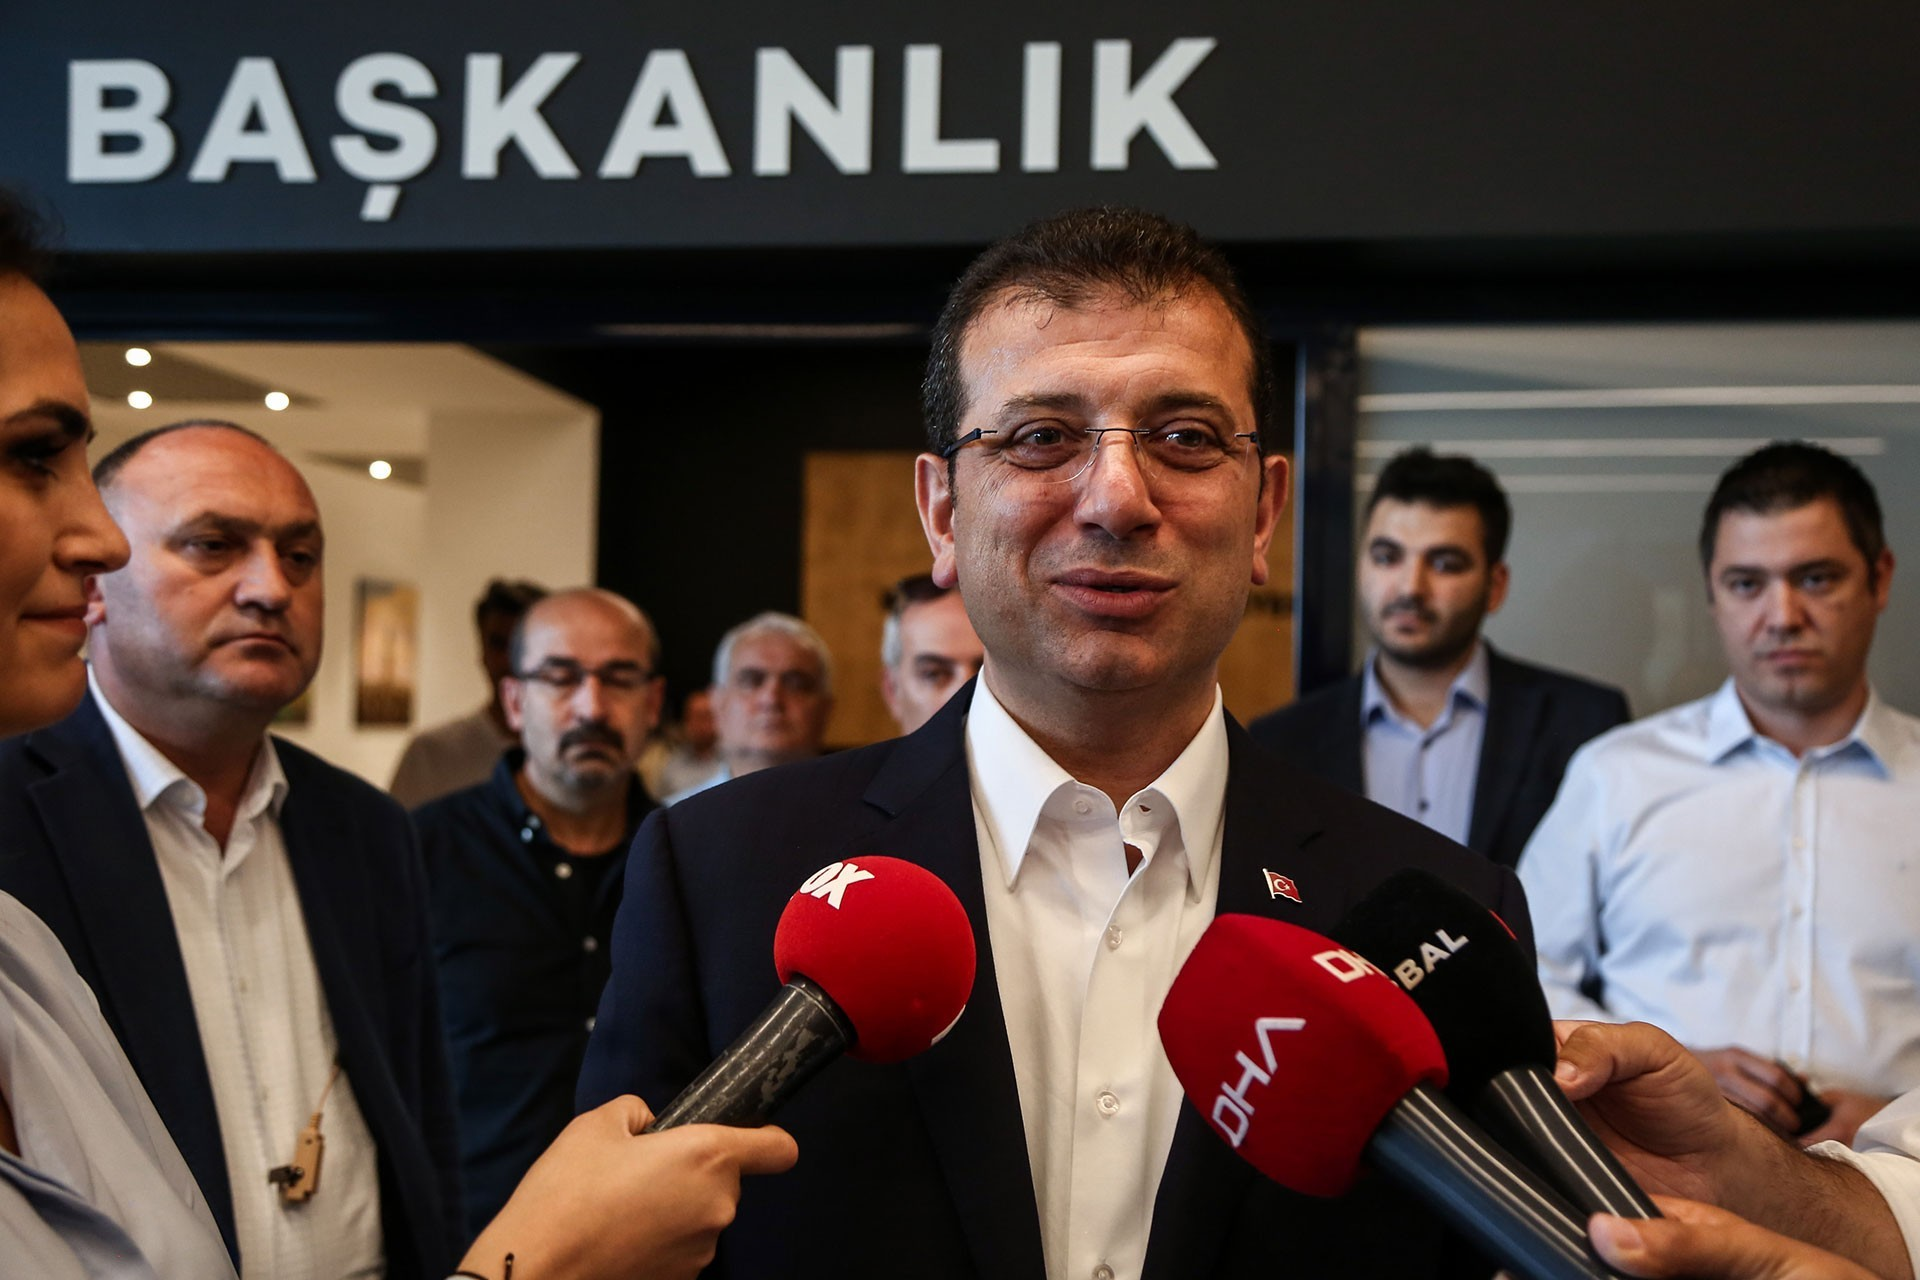 Elected mayor, Ekrem İmamoğlu, has no say over two-thirds of the İstanbul Municipality's budget